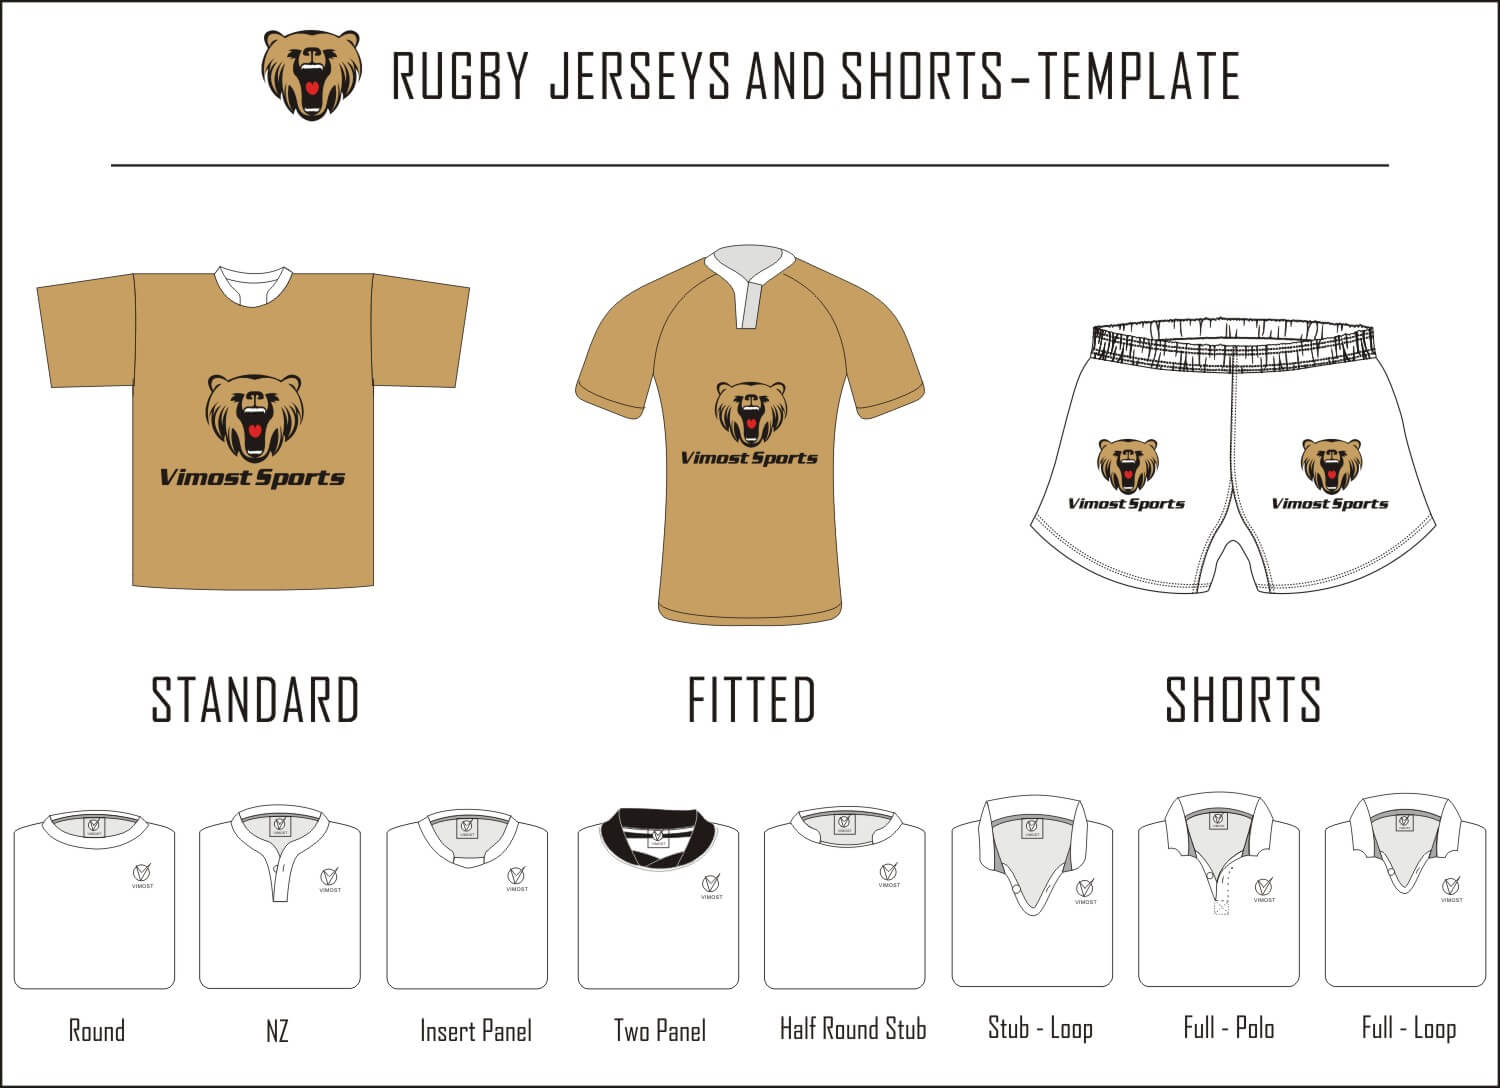 Rugby jersey and shorts-template